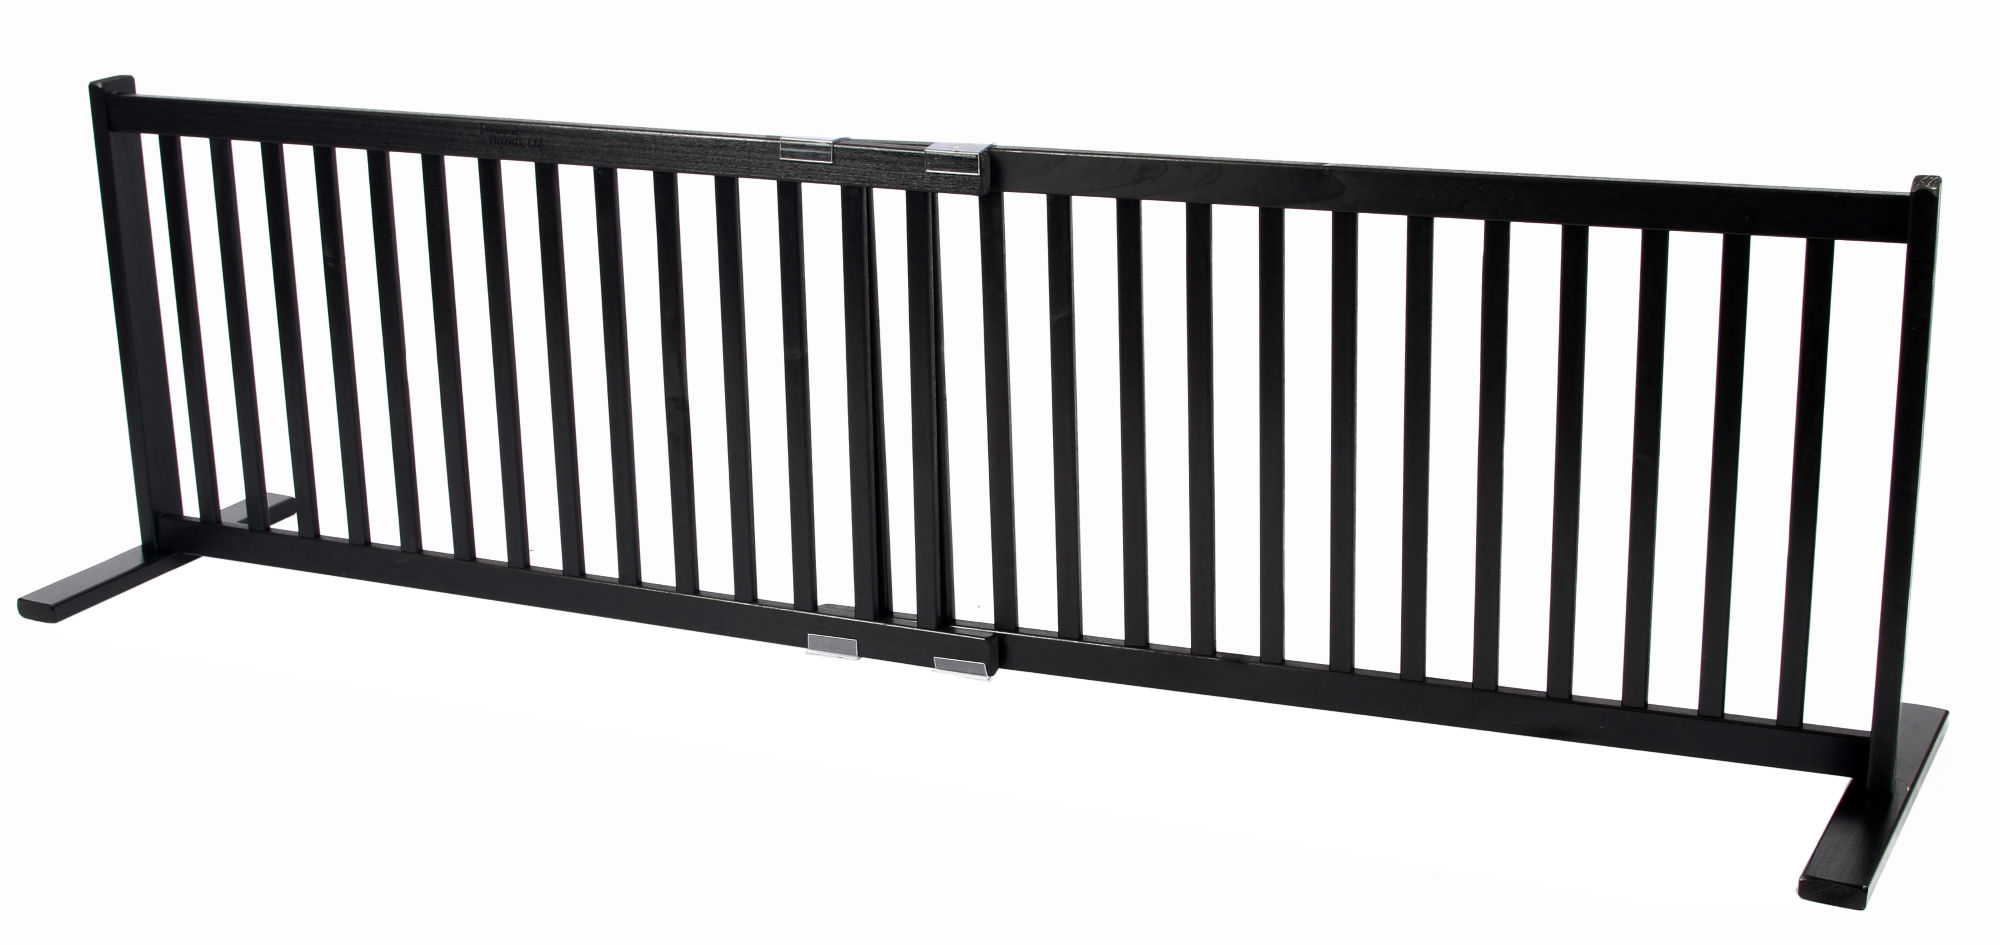 Free Standing Large All Wood Pet Gate Black 20h 39 25